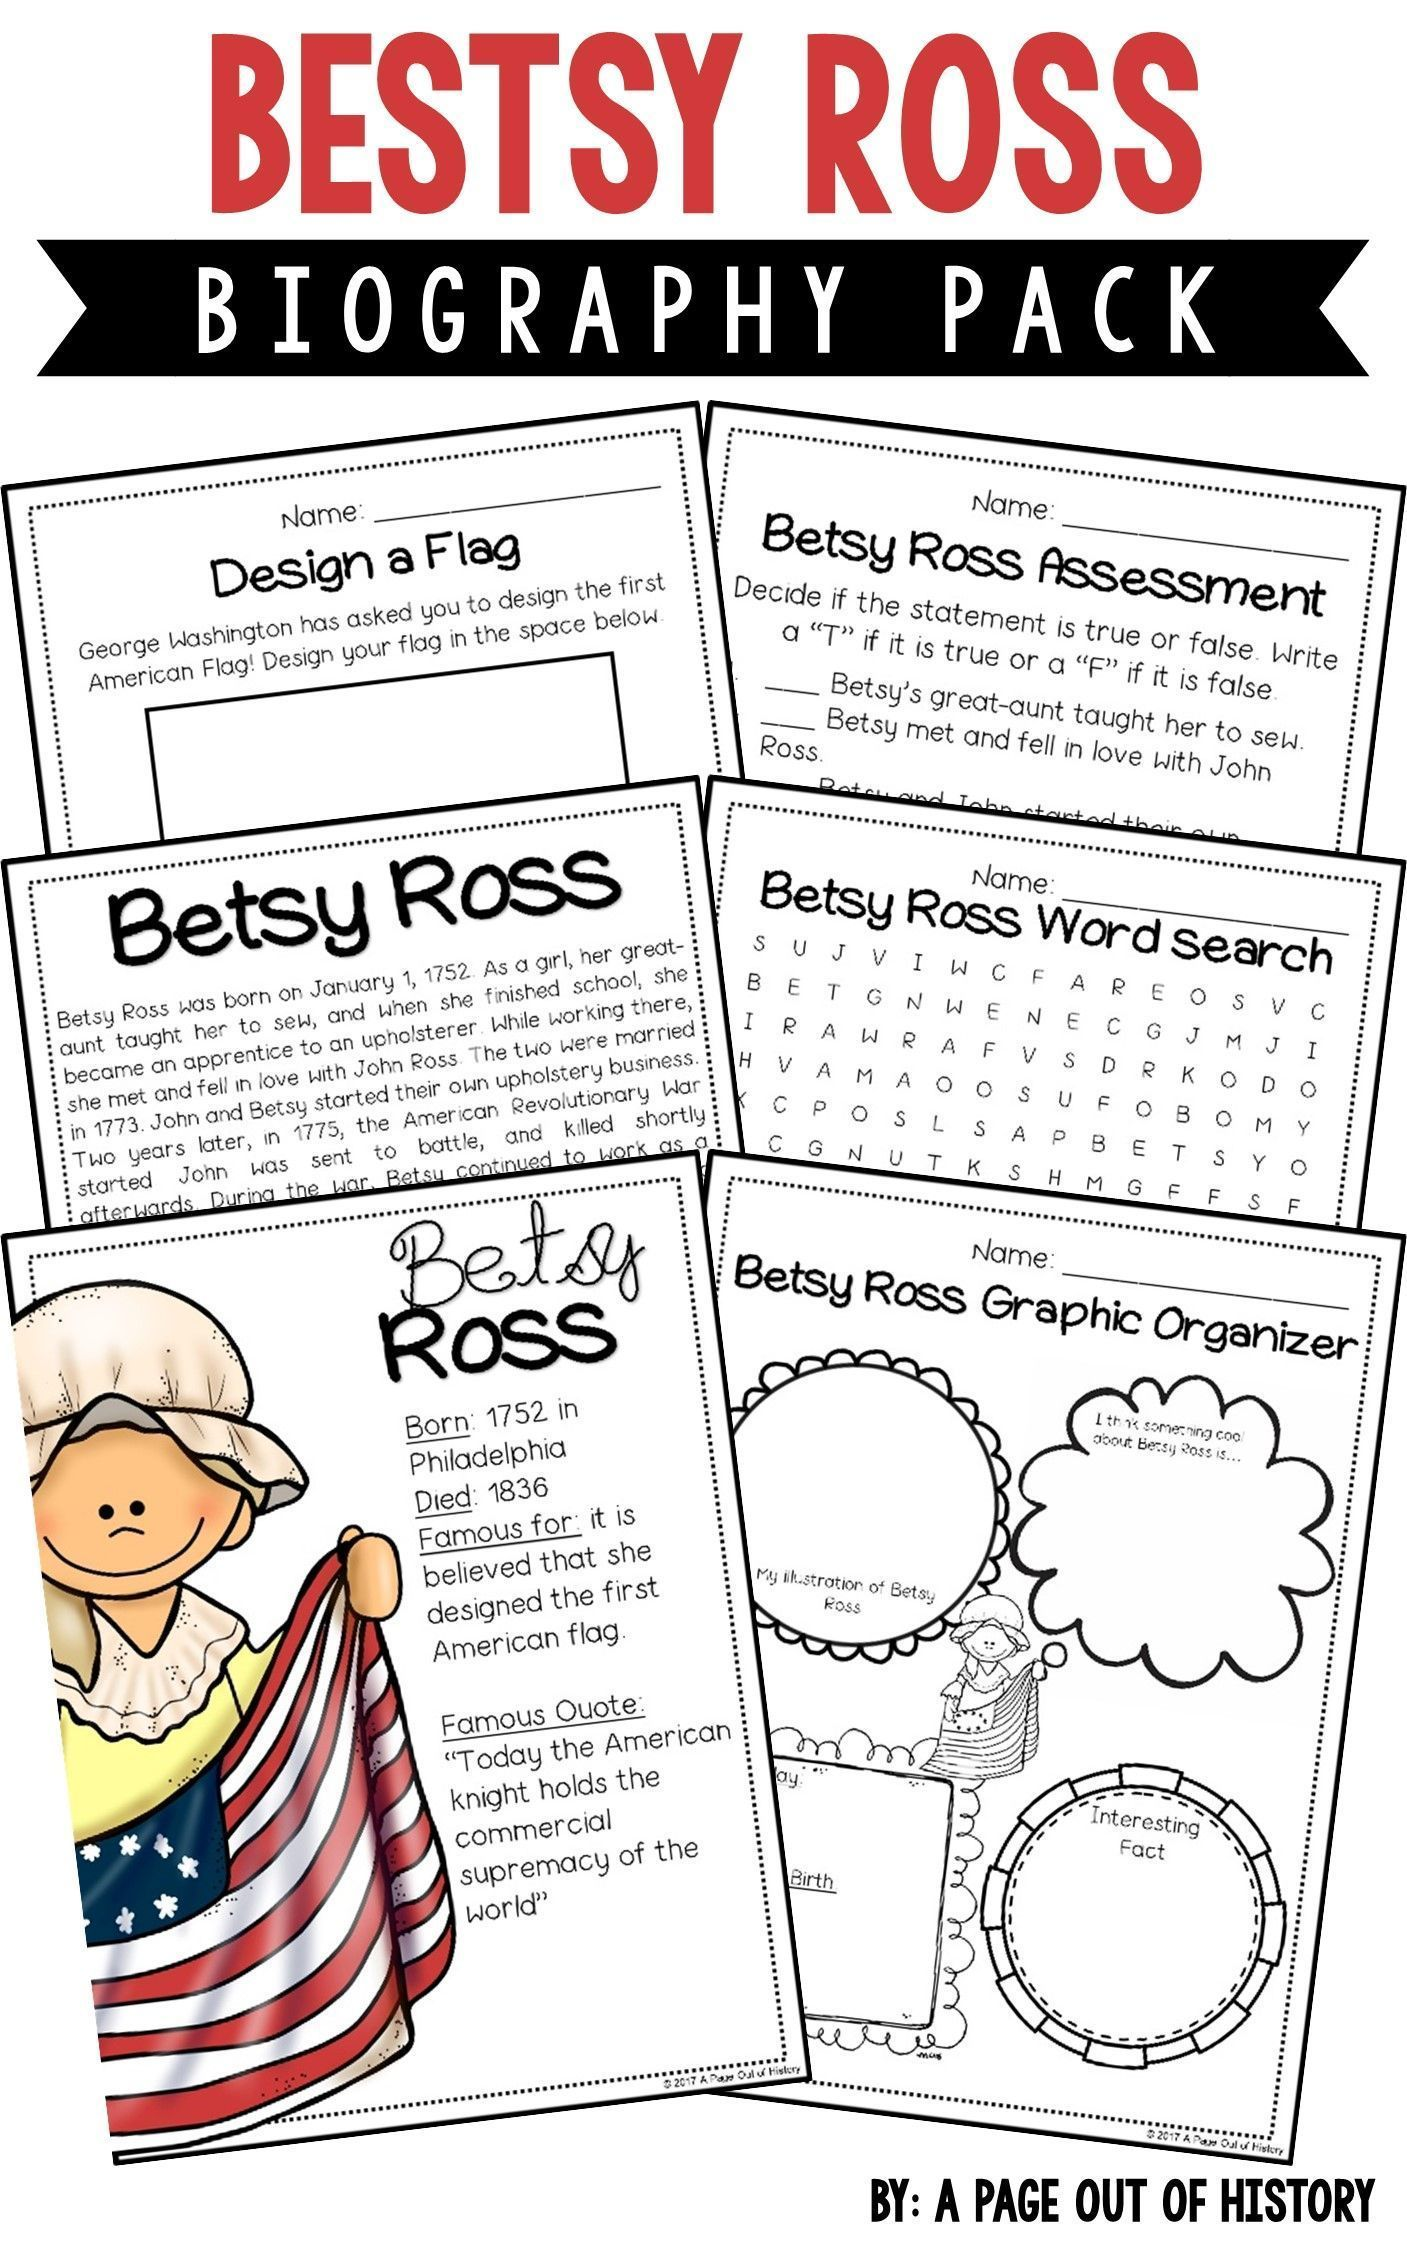 Betsy Ross Biography Pack Revolutionary Americans